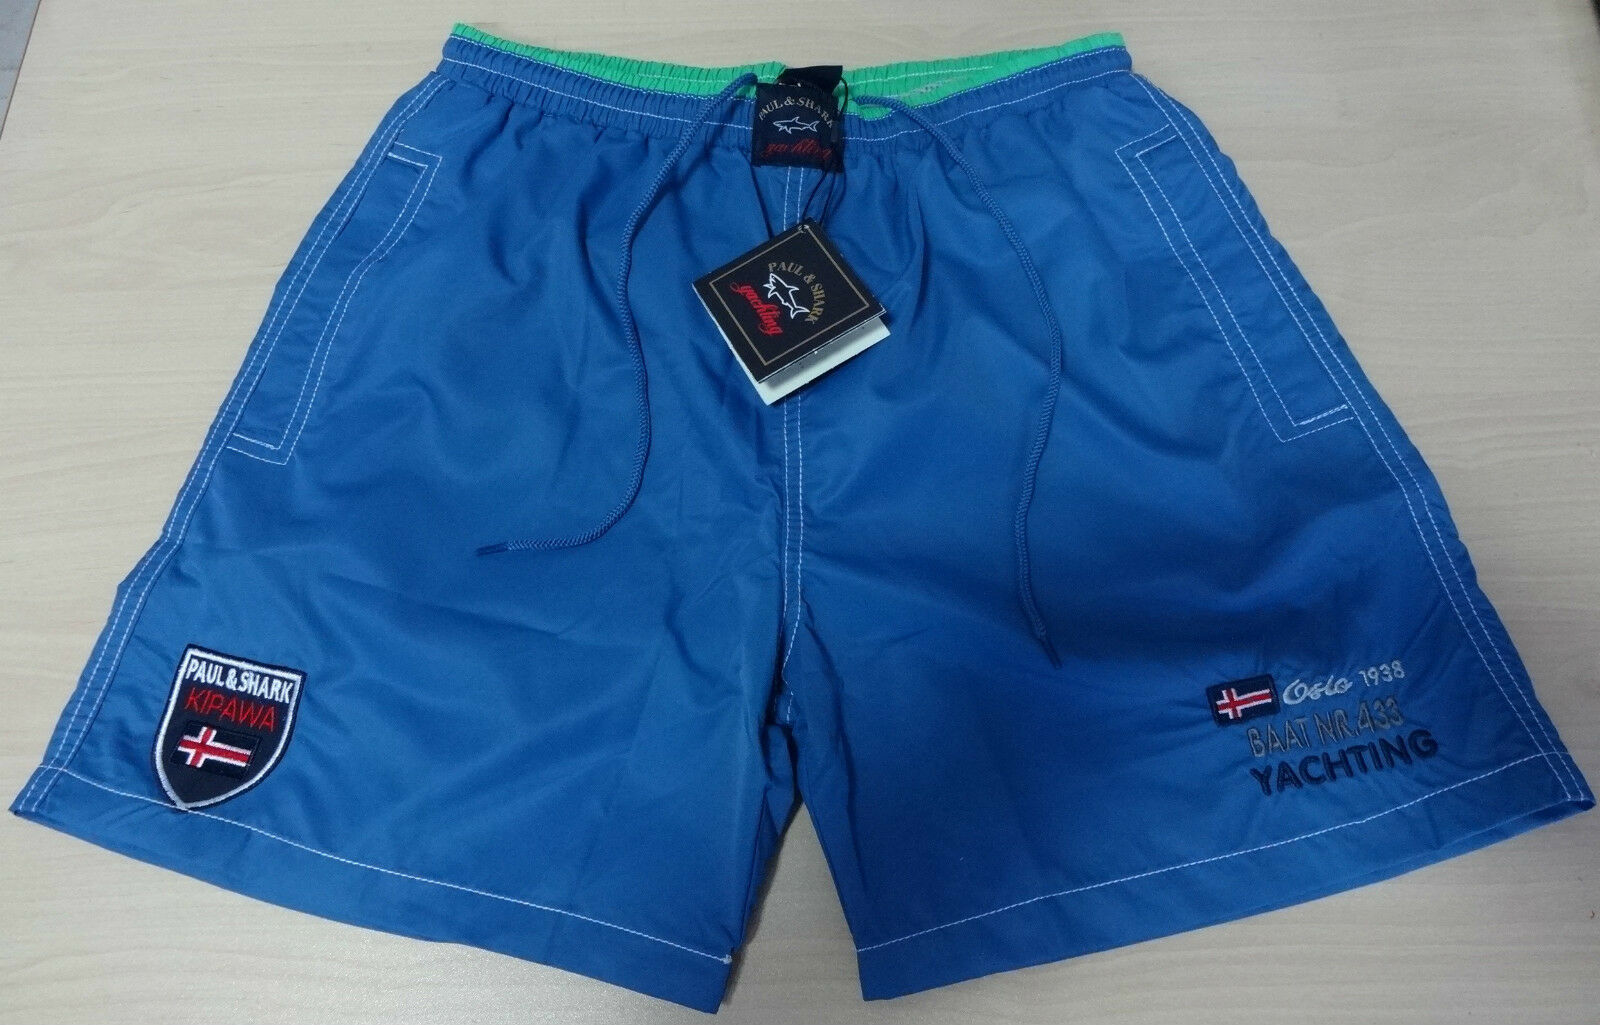 NEU PAUL&SHARK Yachting Shorts, Trunks Badehose %%%Red.